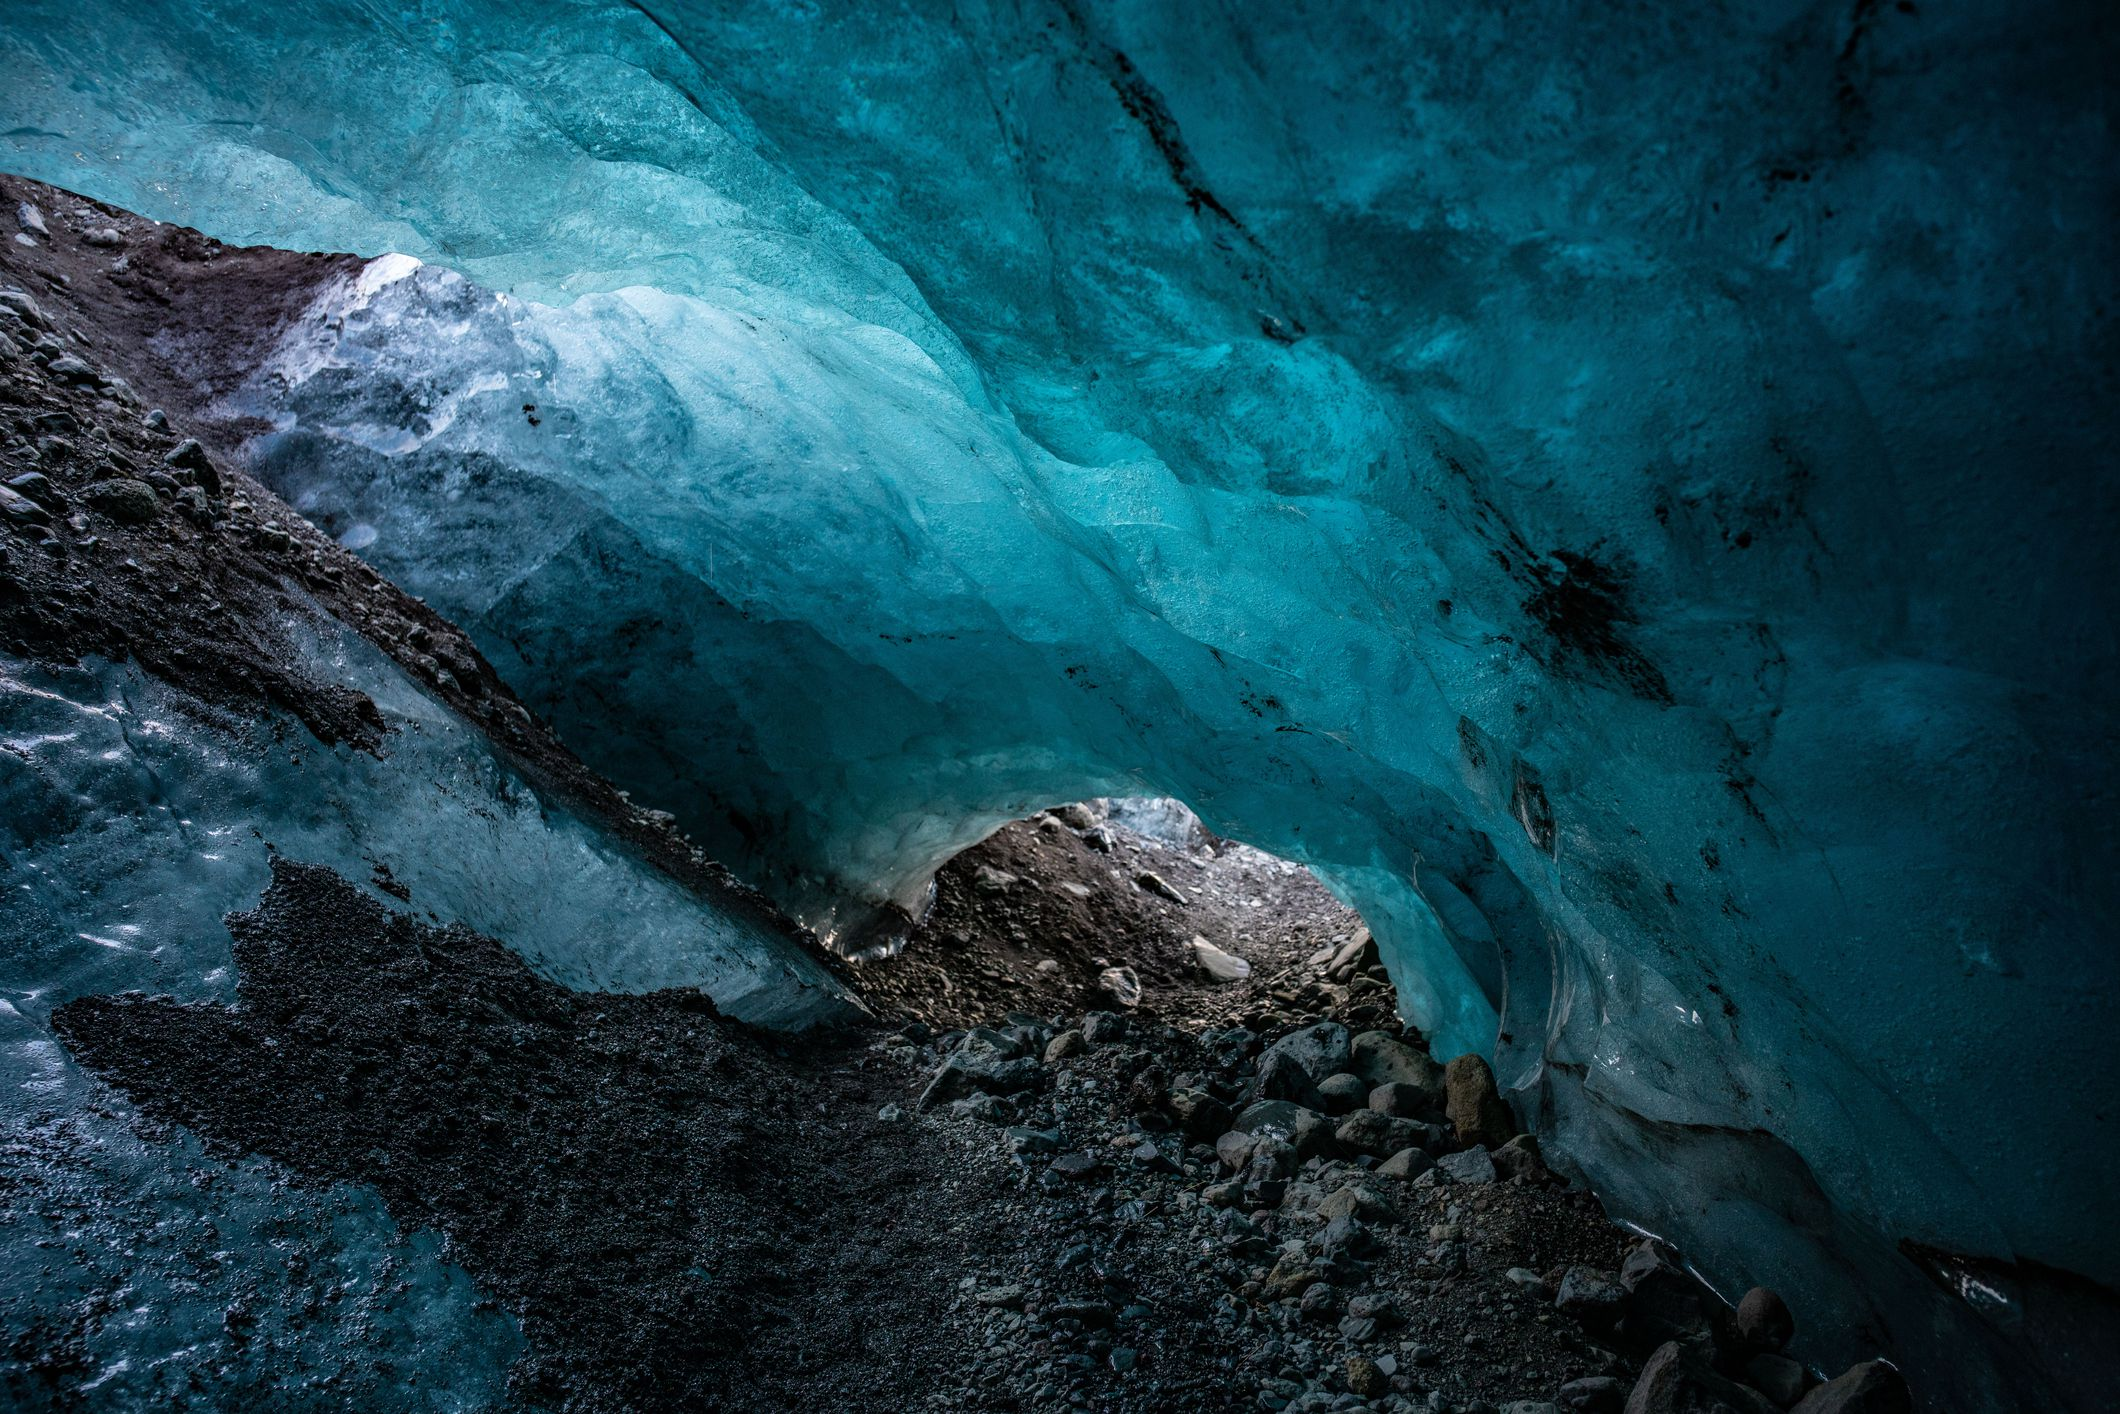 Slide 29 of 52: Iceland's Vatnajökull, the largest glacier in Europe, is known for its blue ice caves.